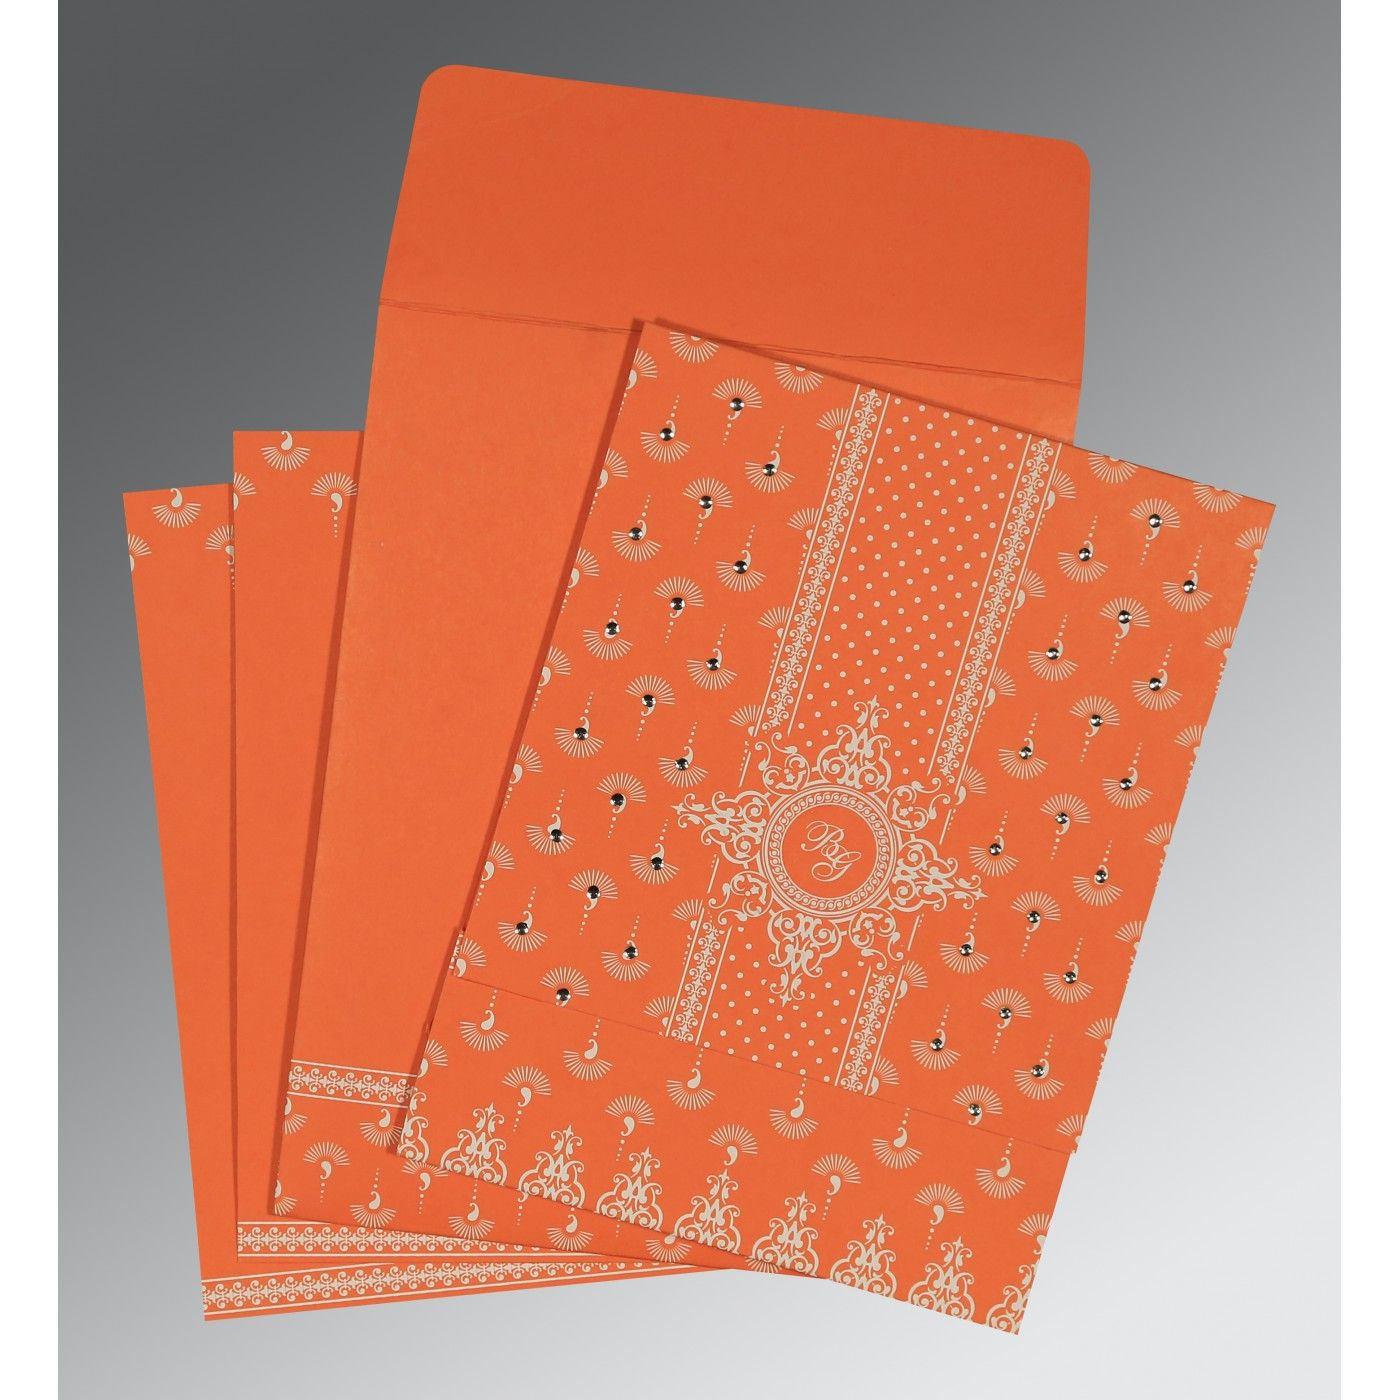 ORANGE MATTE SCREEN PRINTED WEDDING INVITATION : CIN-8247I - IndianWeddingCards